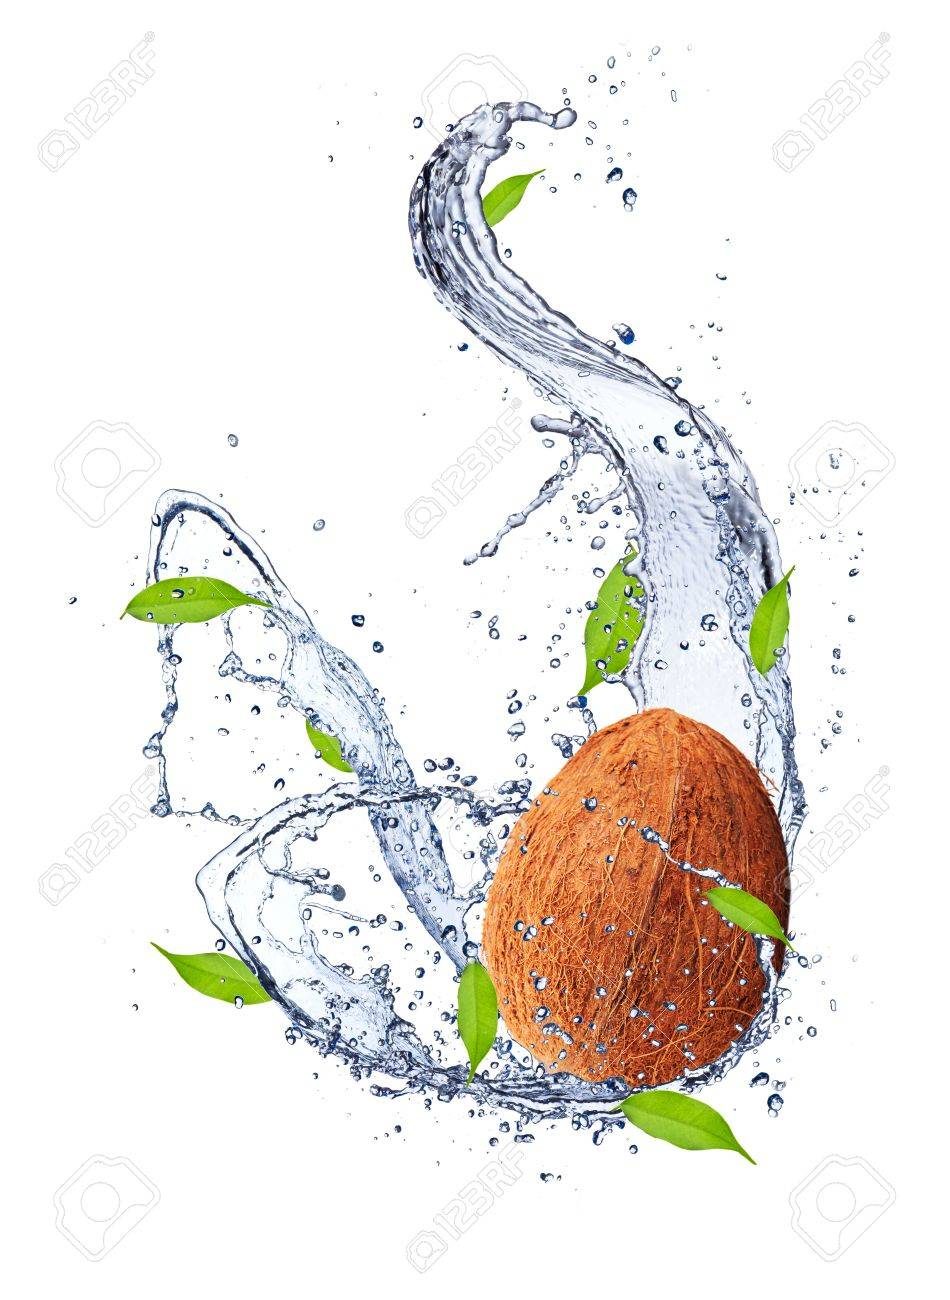 Coconut in water splash, isolated on white background Stock Photo - 16725456